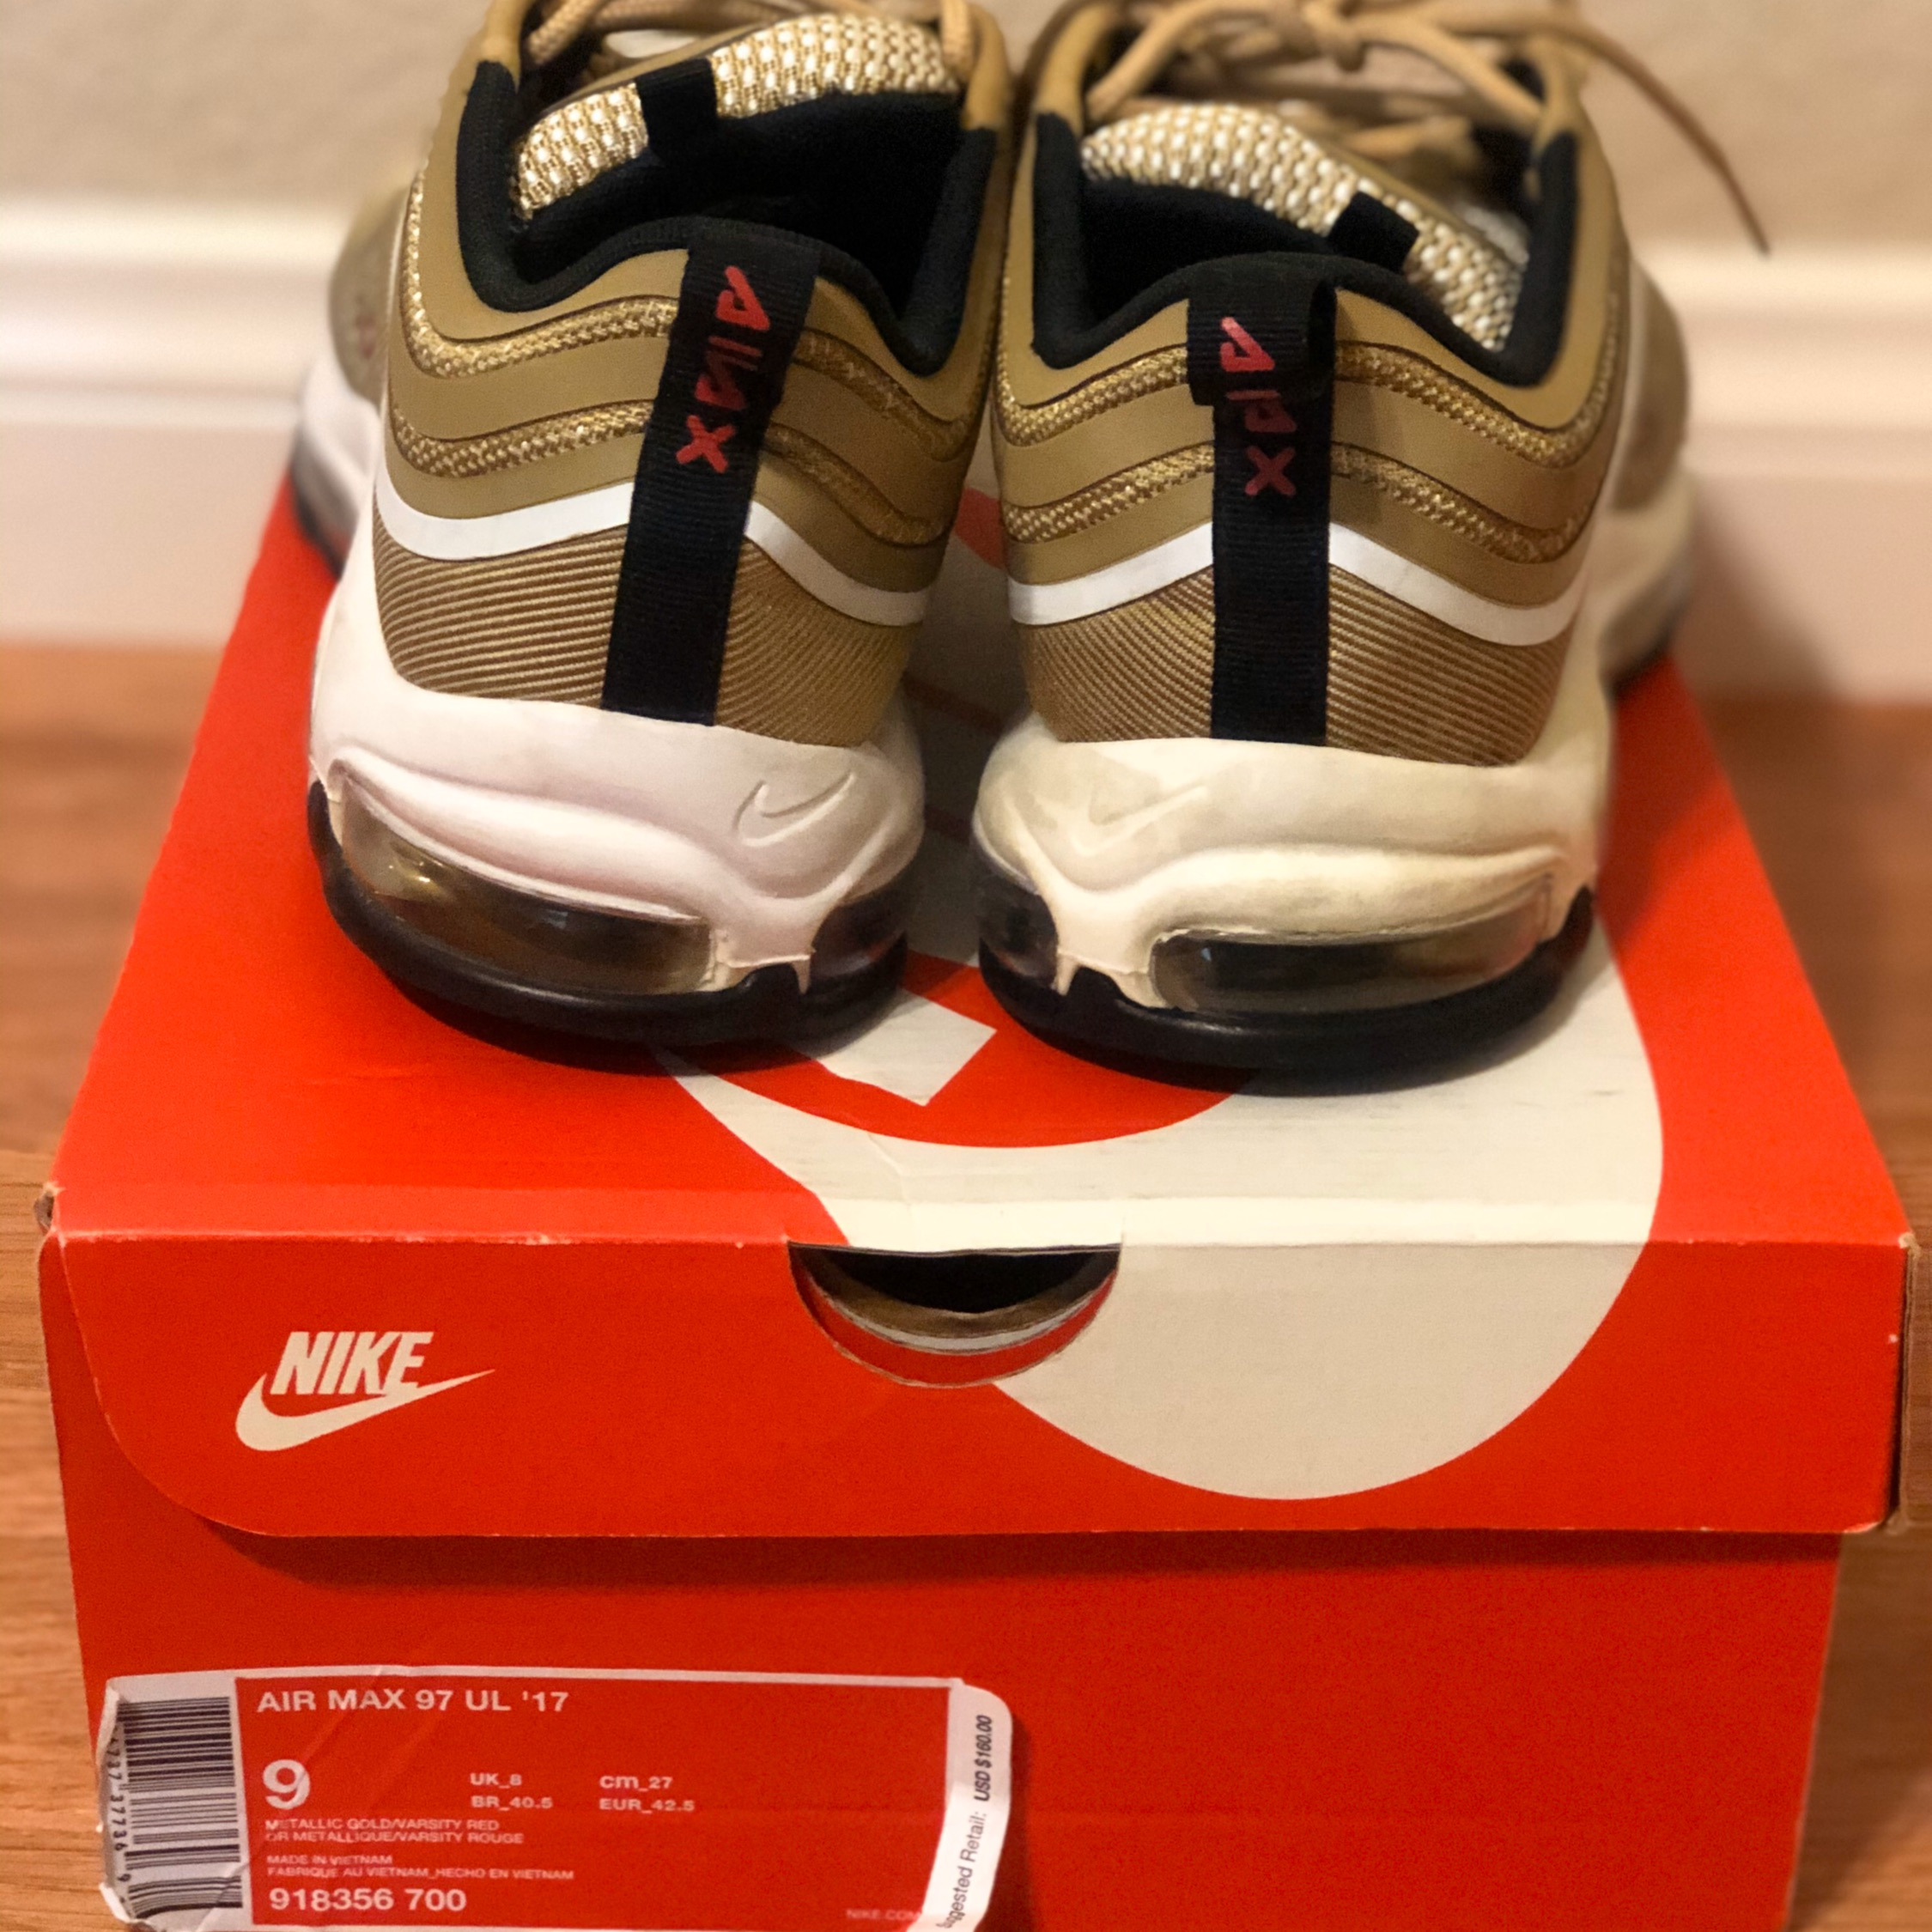 Best 25 Air max 97 ideas on Pinterest Air max 97 outfit, I 97